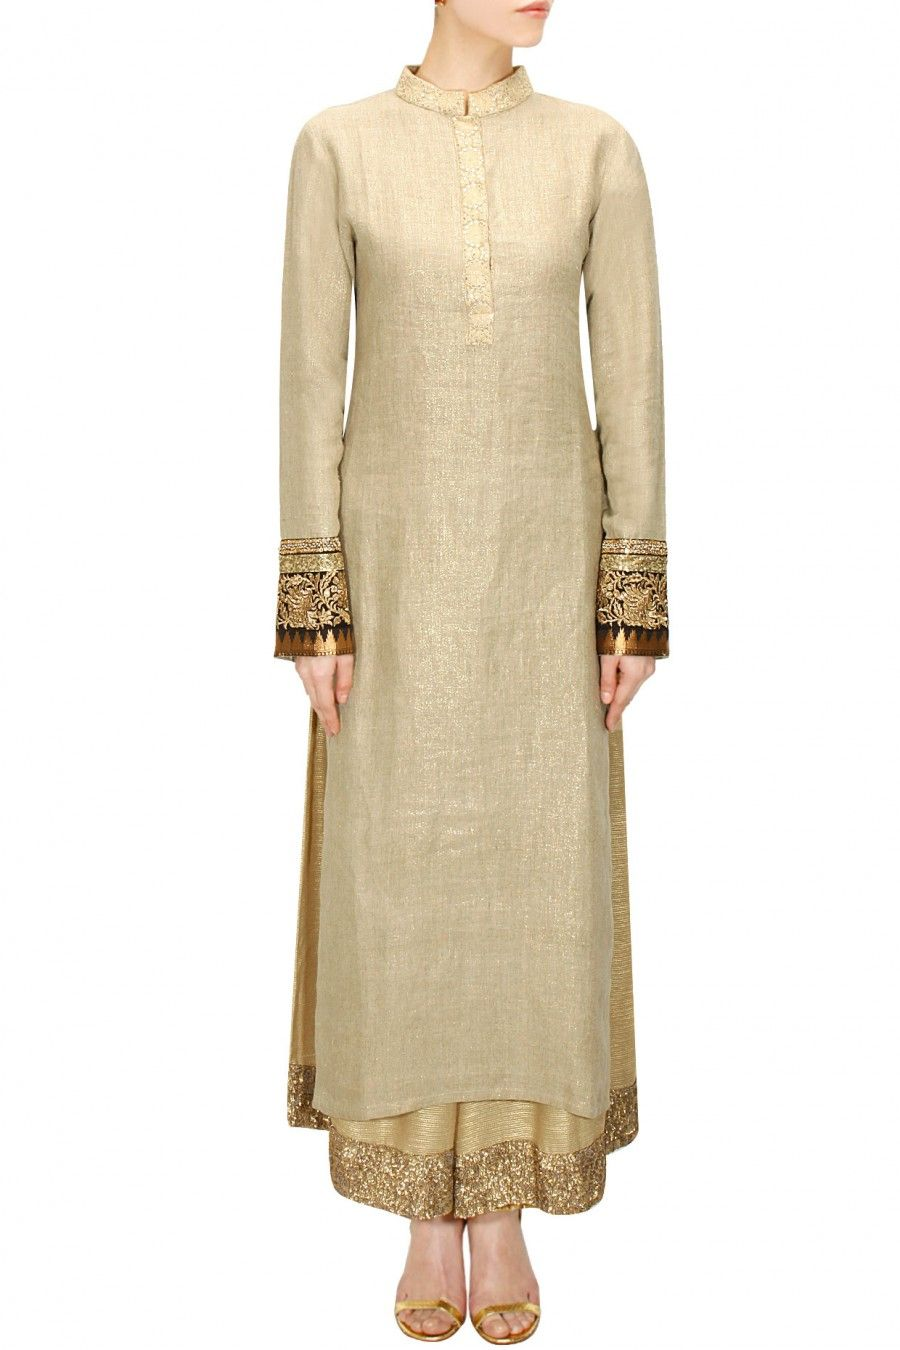 46c2881185 Beige shimmer kurta with sequins embroidered pants available only at  Pernia's Pop-Up Shop.